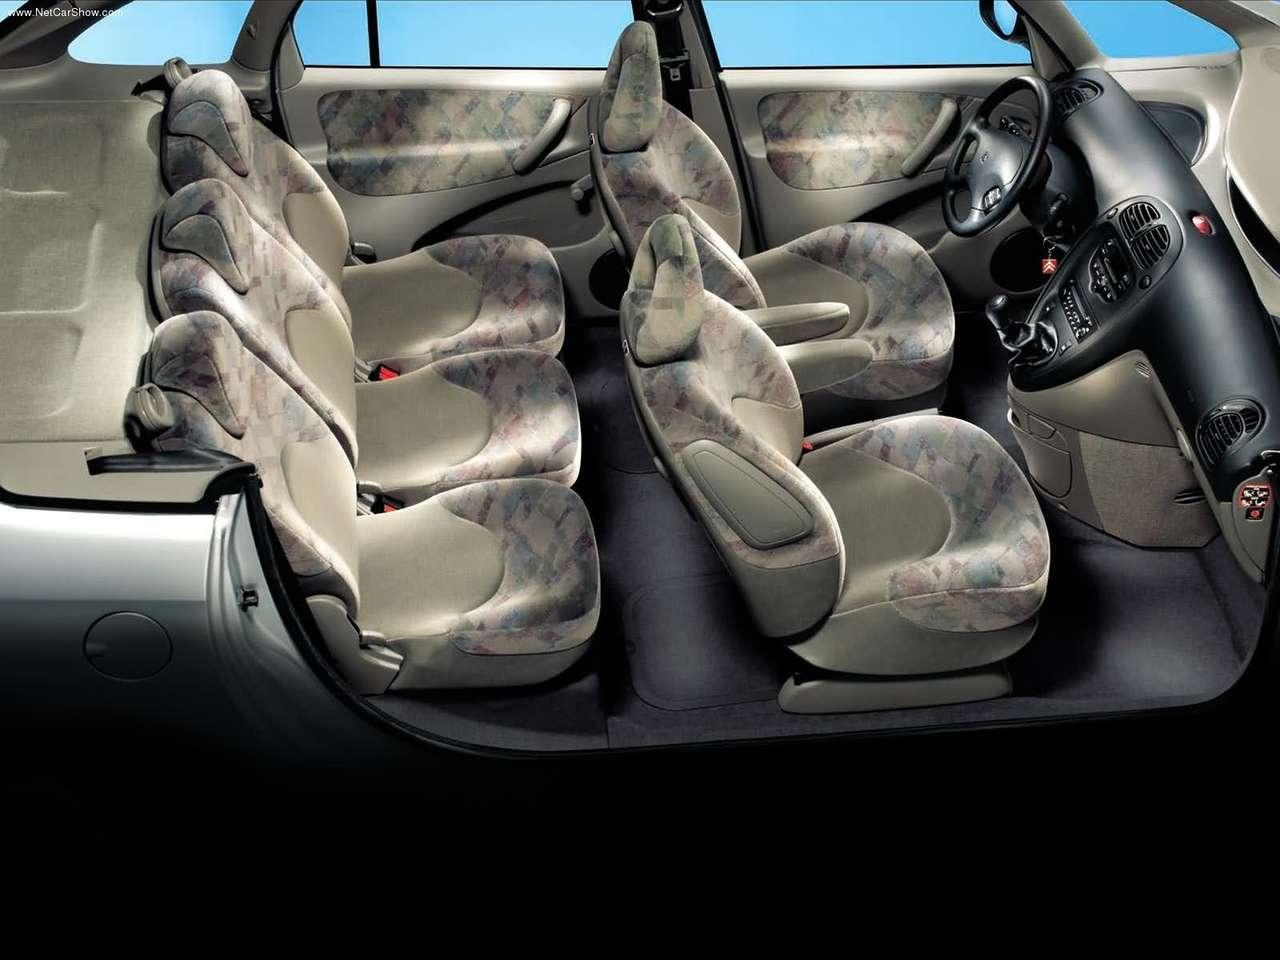 Xsara Picasso passenger compartment